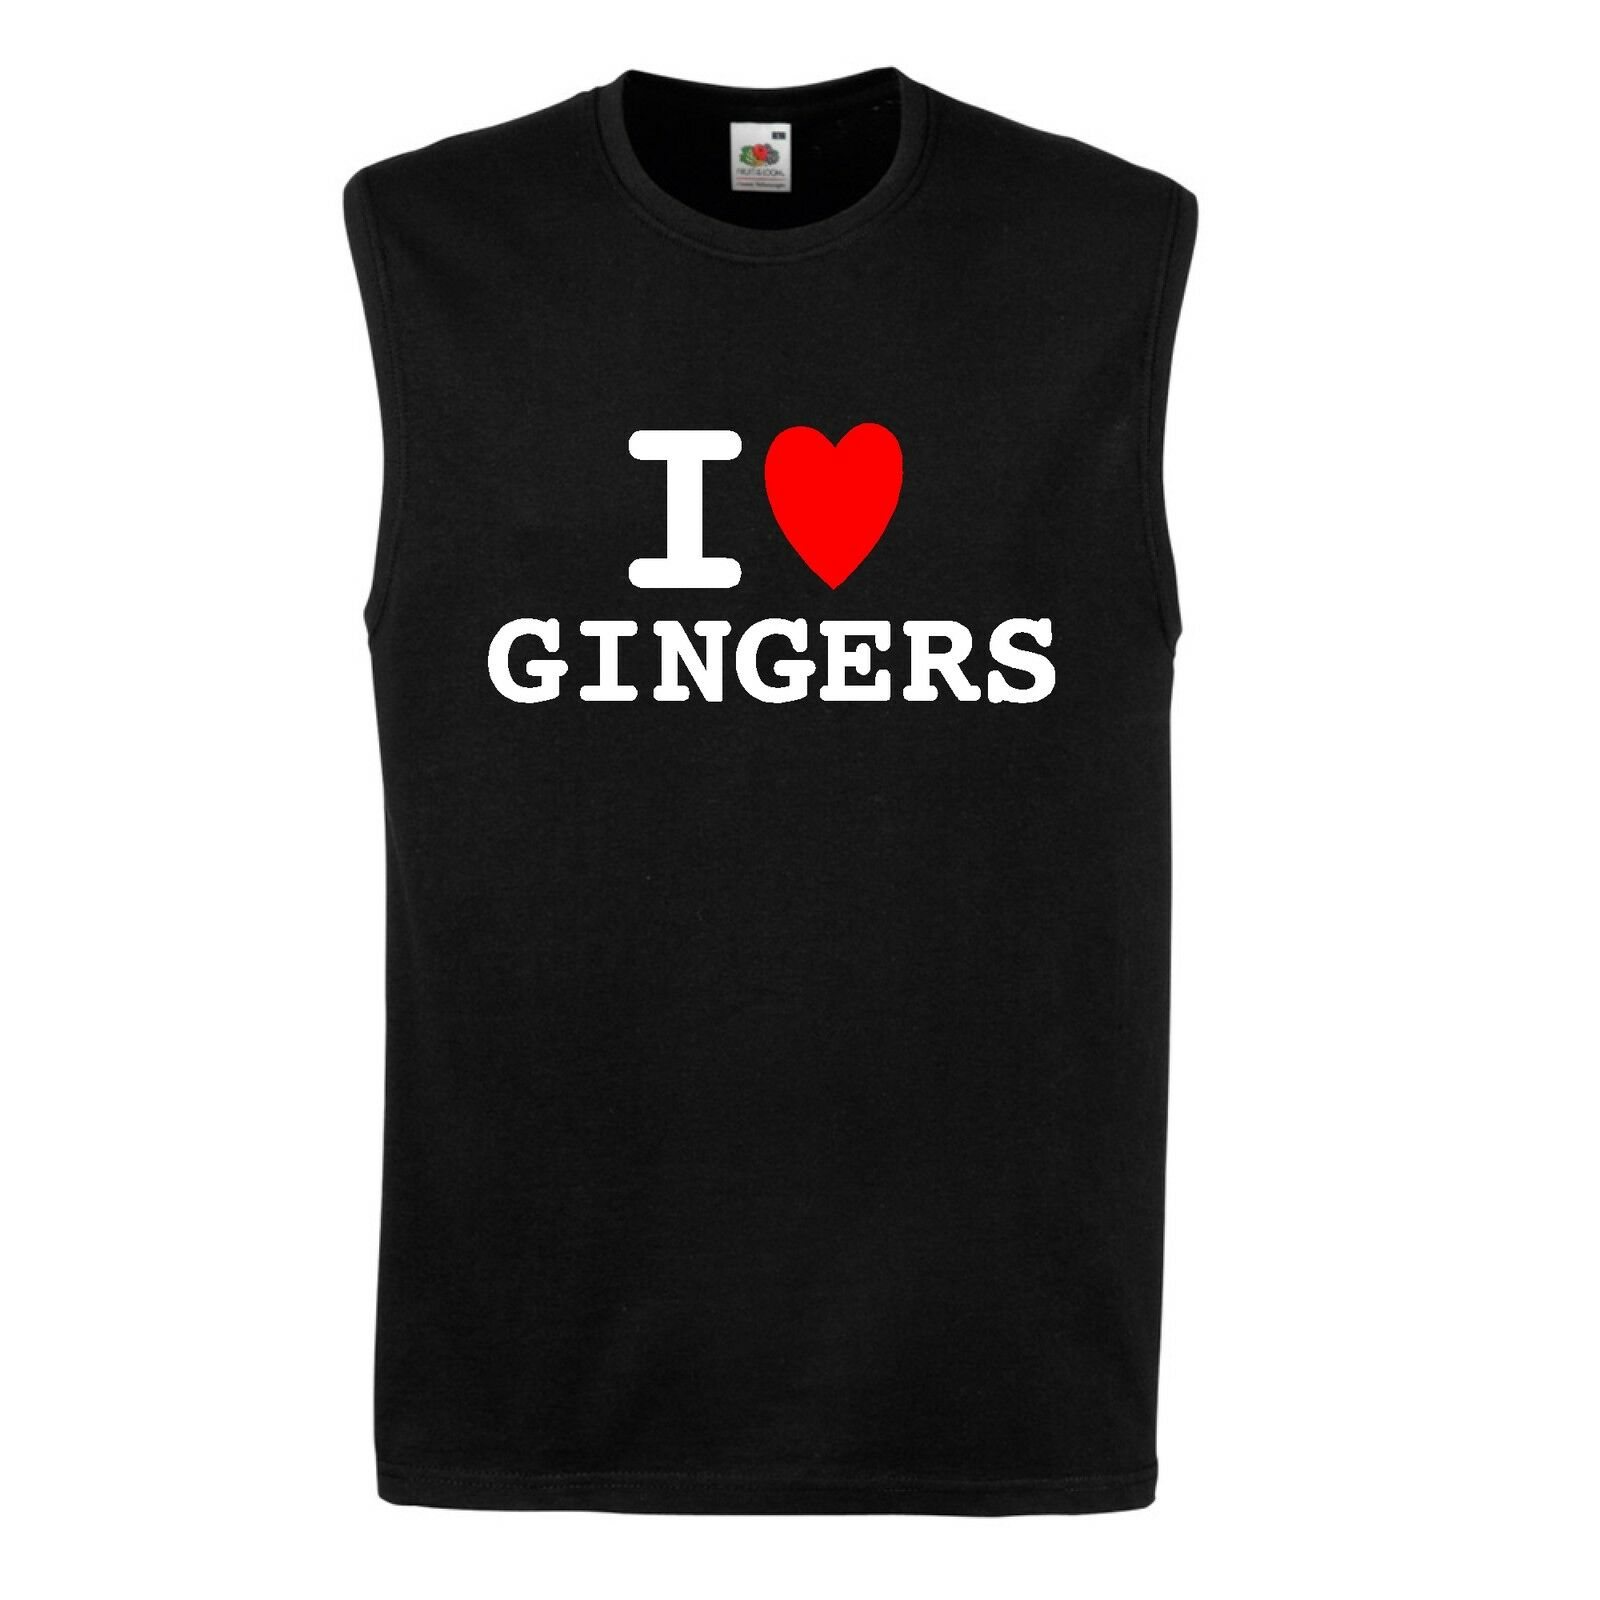 I heart love GINGERS T shirt BNWT choice colours /& sizes FUN retro party cool